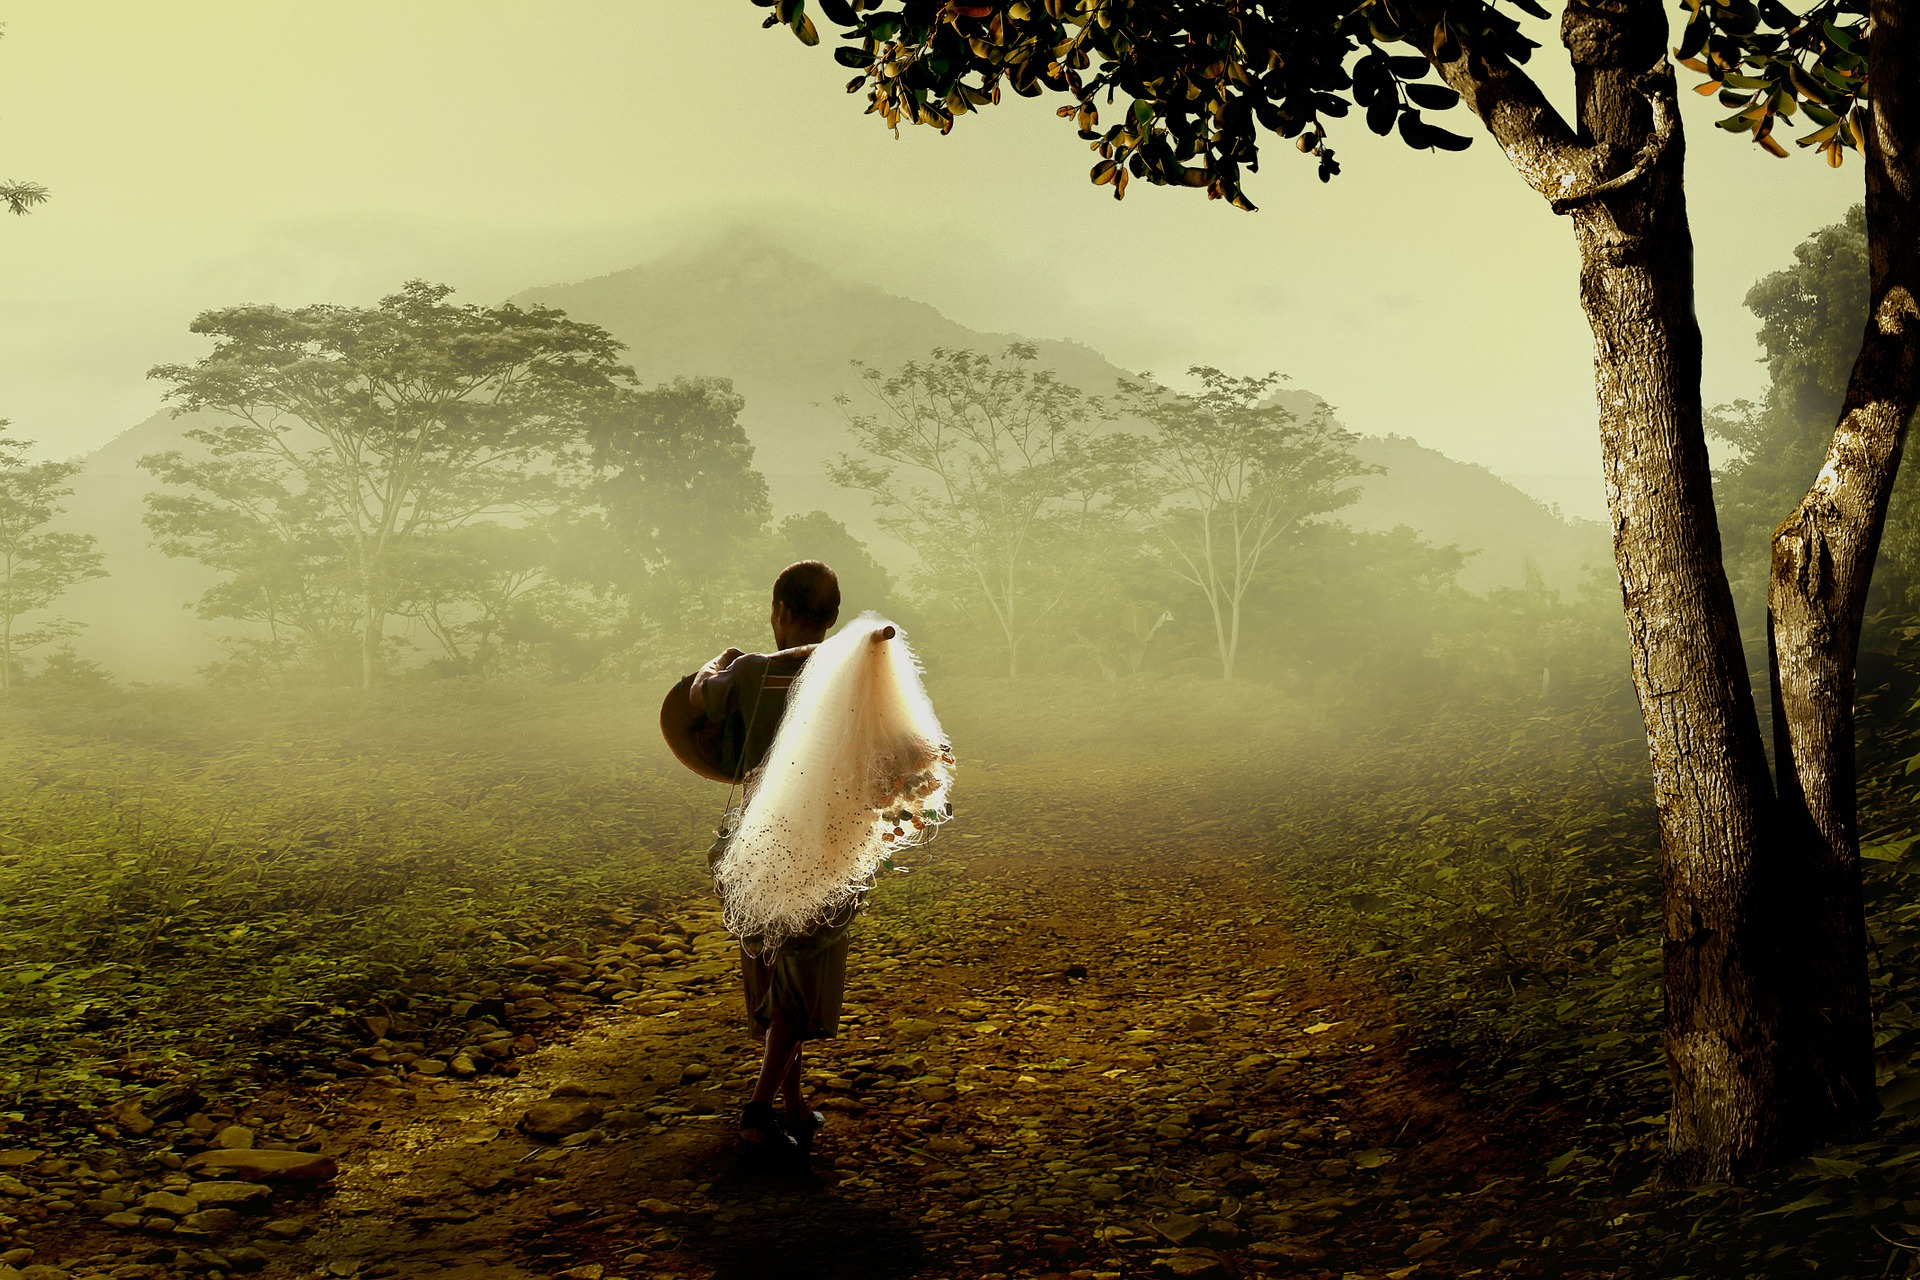 Man walking into the forest (Credit: pixabay/Herriest)